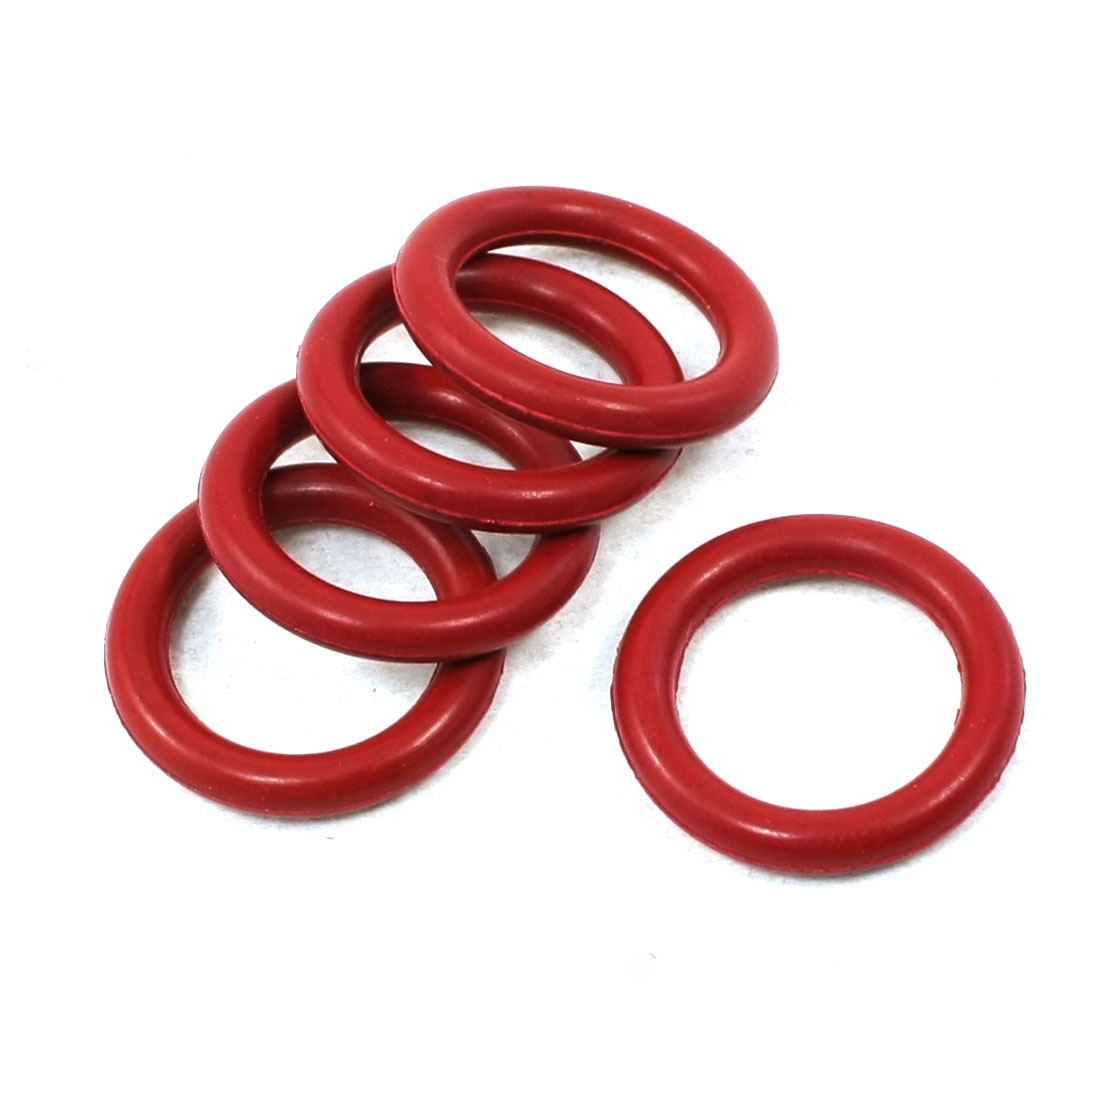 5 Pcs Electric Tool Red Rubber O Ring Oil Seal Gasket 21mm x 14.6mm x 3.2mm